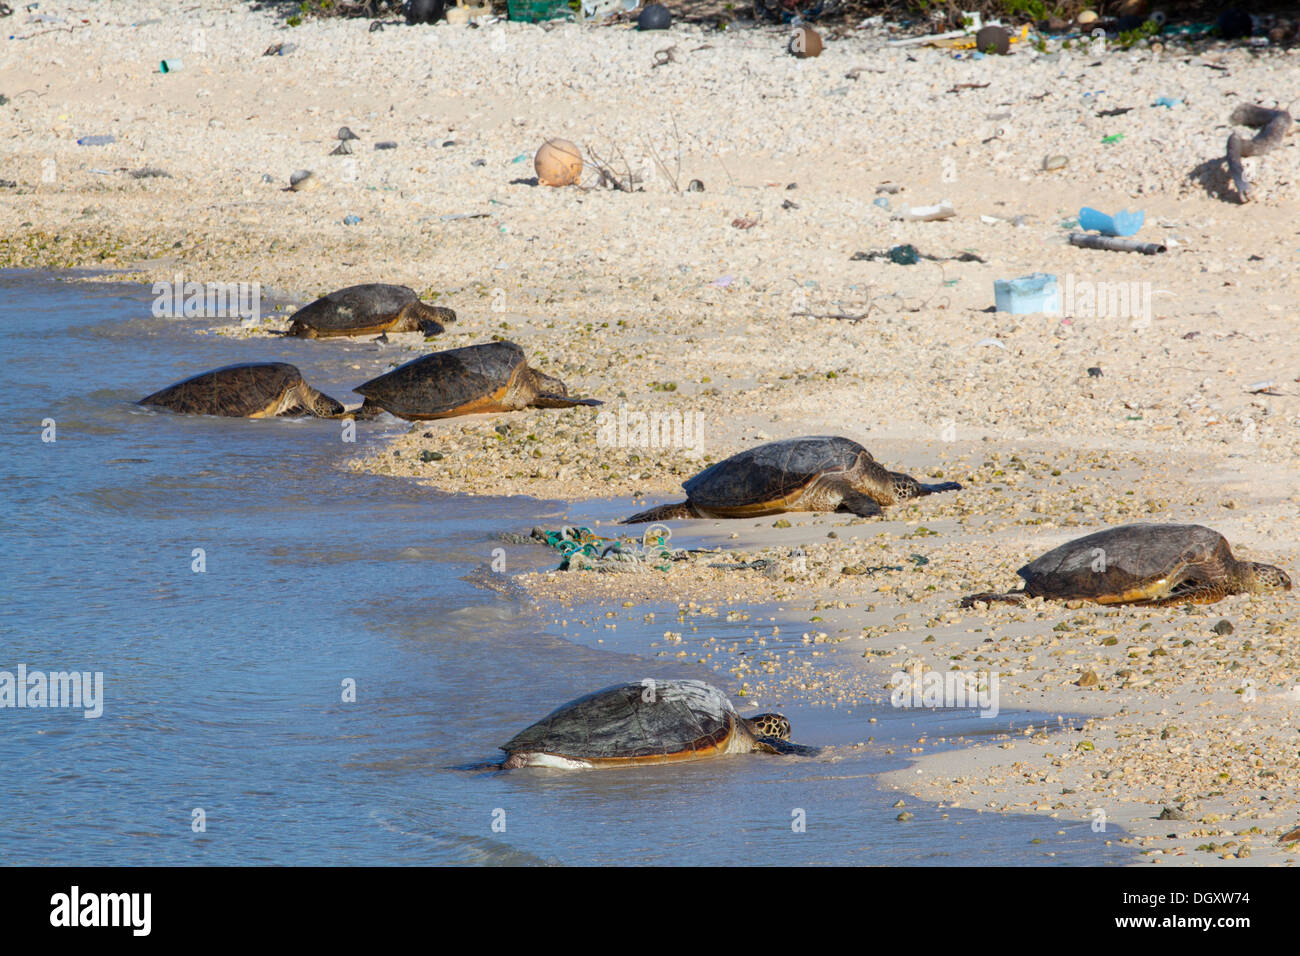 Hawaiian Green Turtles (Chelonia mydas) basking on beach with plastic marine debris in Papahanaumokuakea Marine Stock Photo